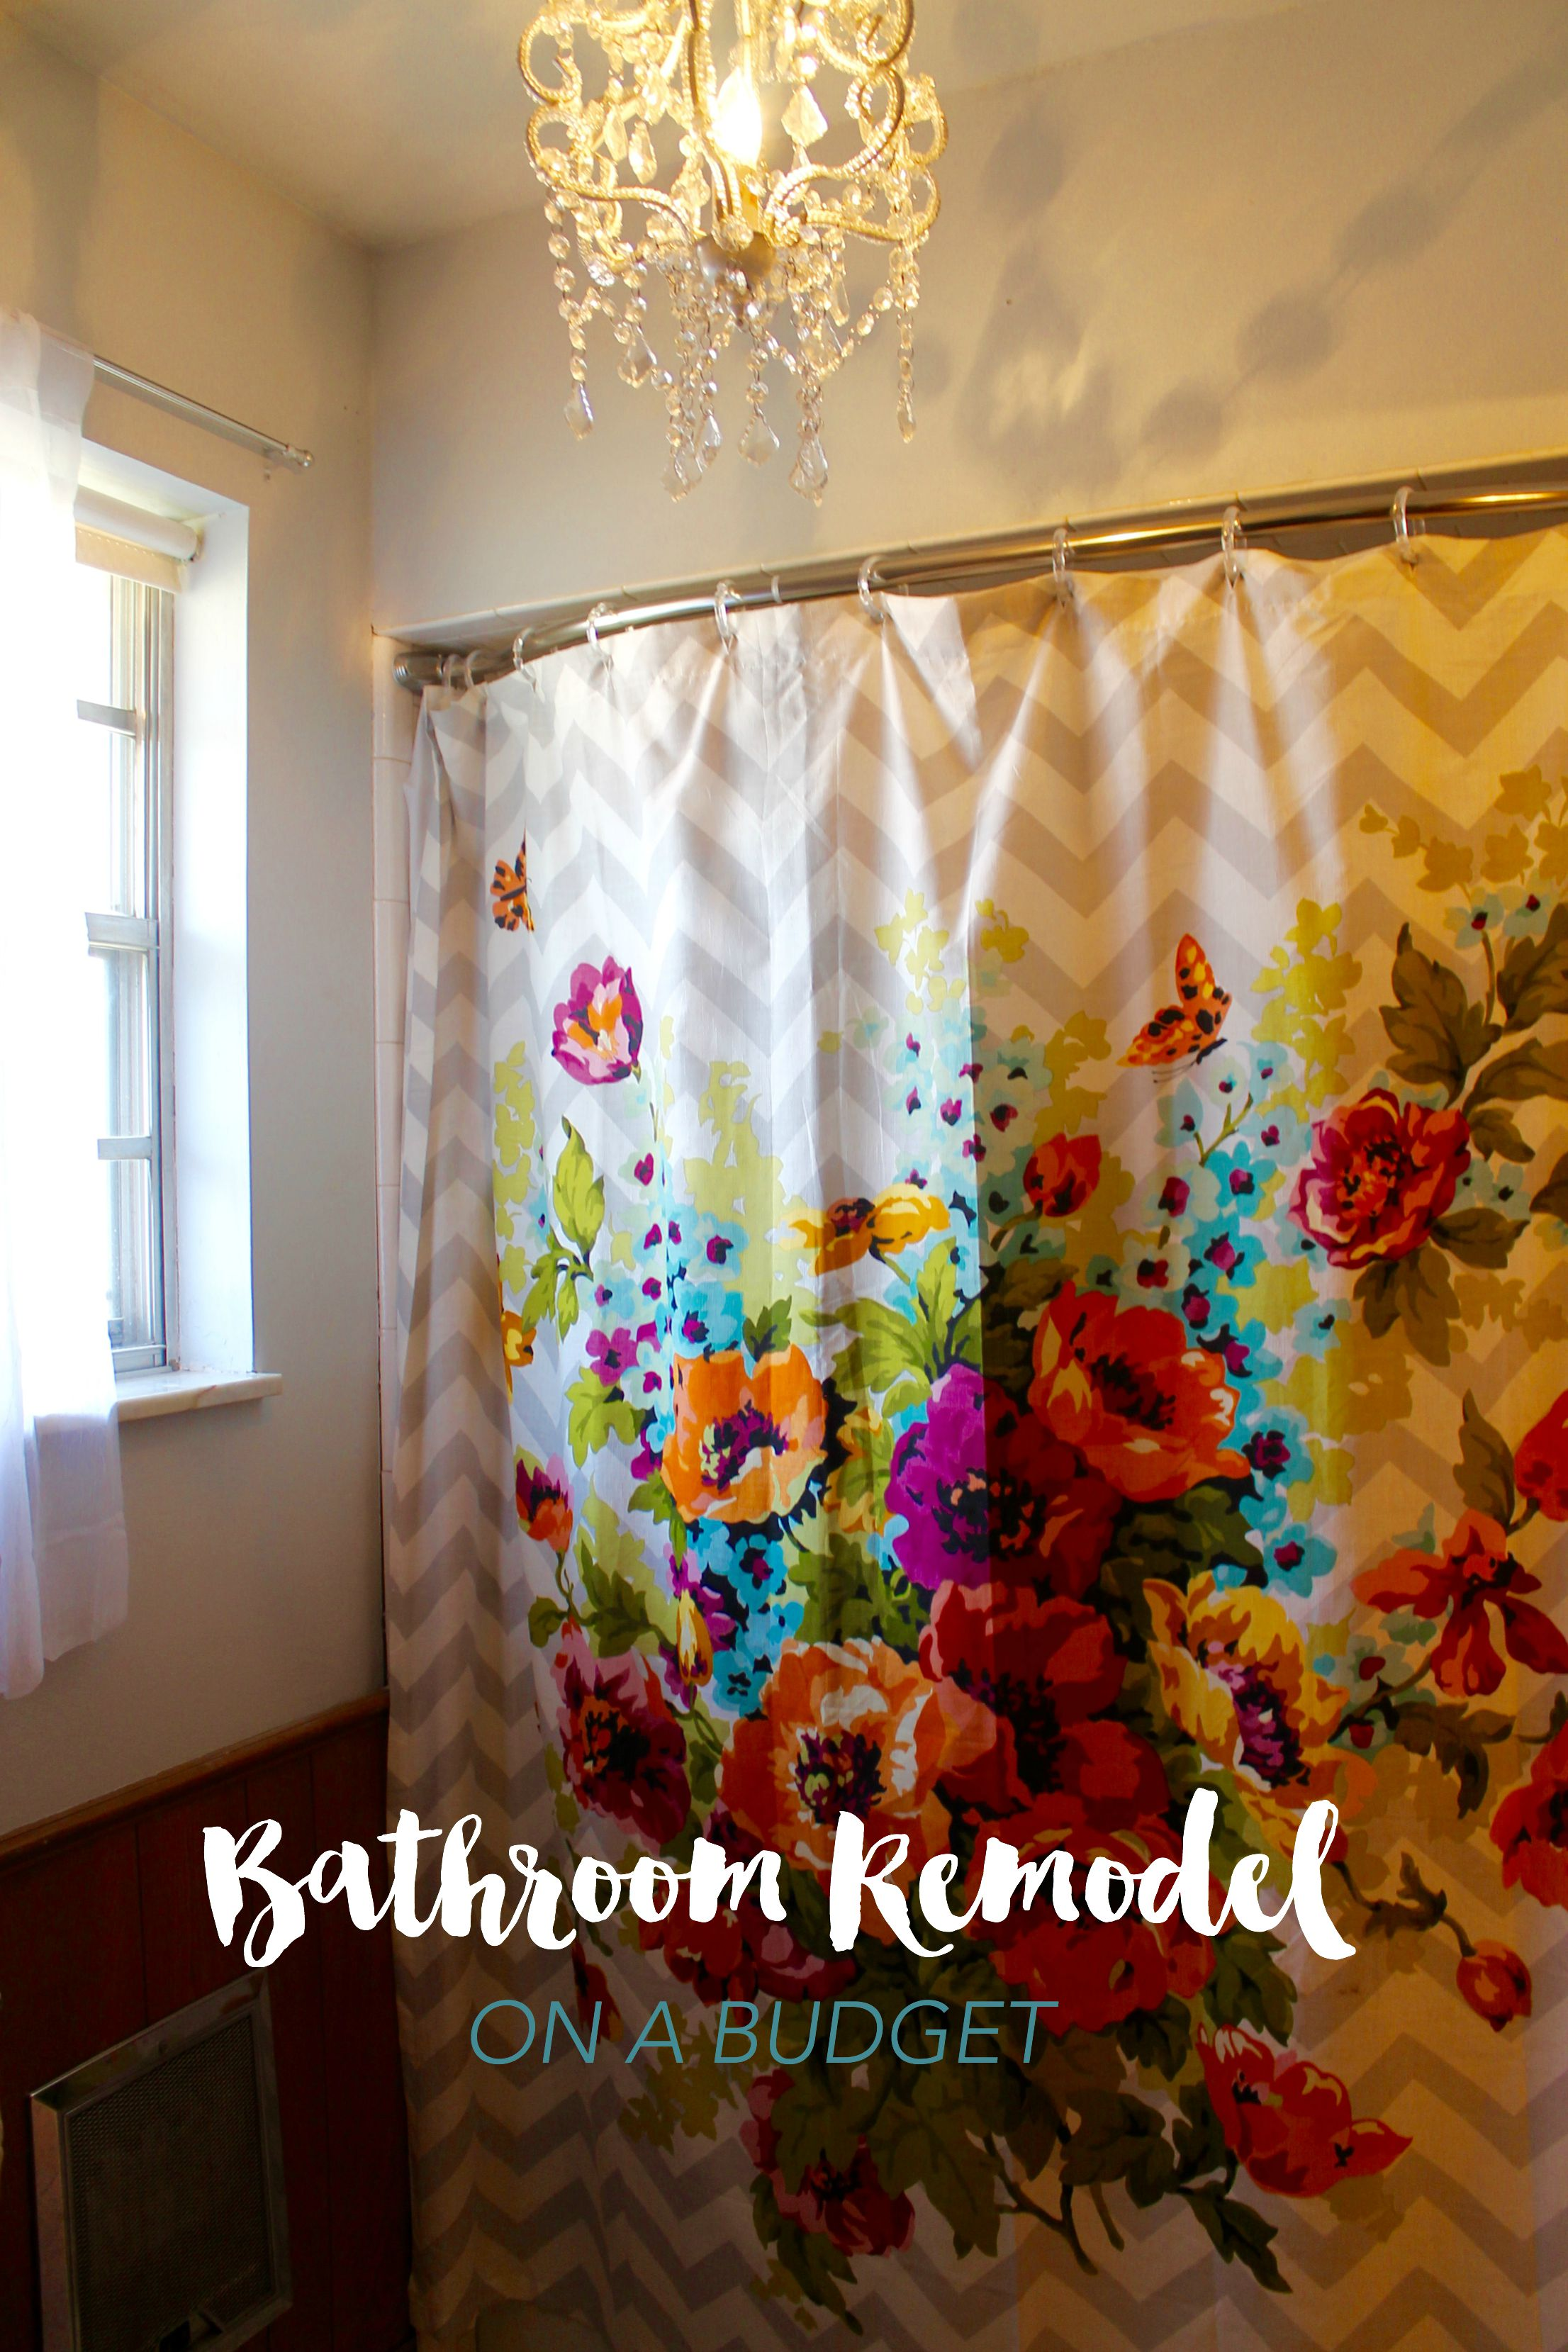 Bathroom remodel on a budget - How to redo a bathroom on a budget ...